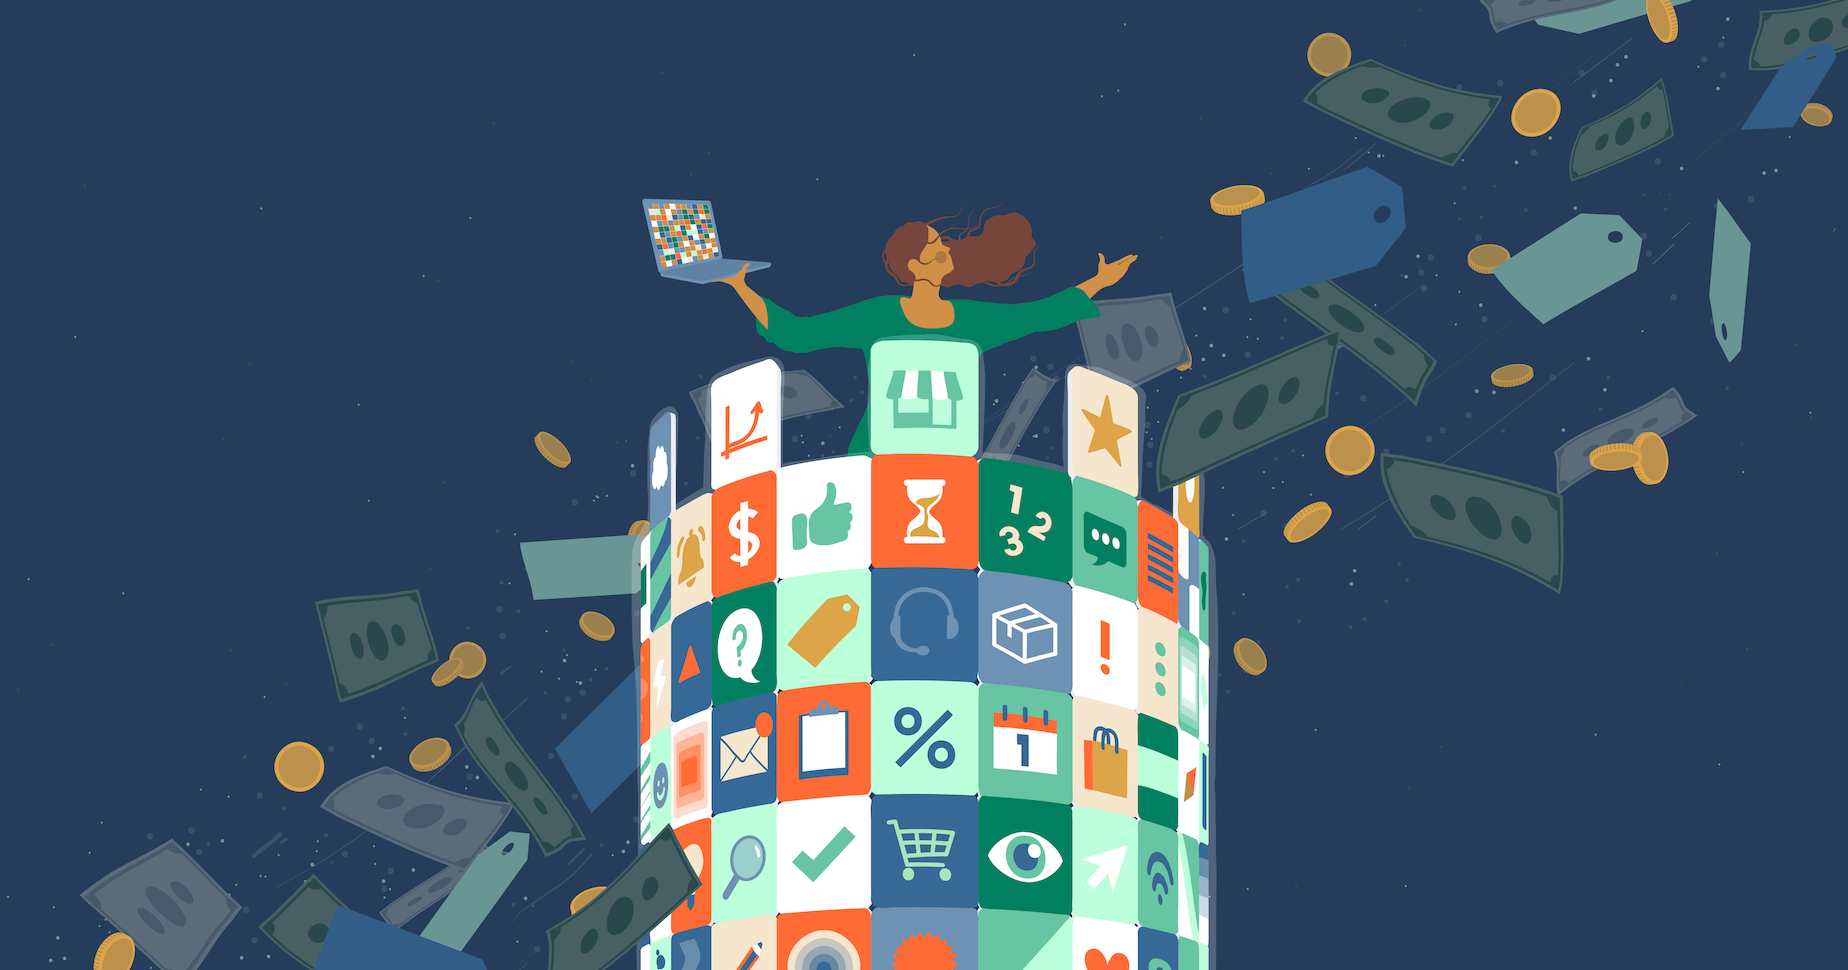 Illustration of a woman standing amongst icons for the best free Shopify apps available